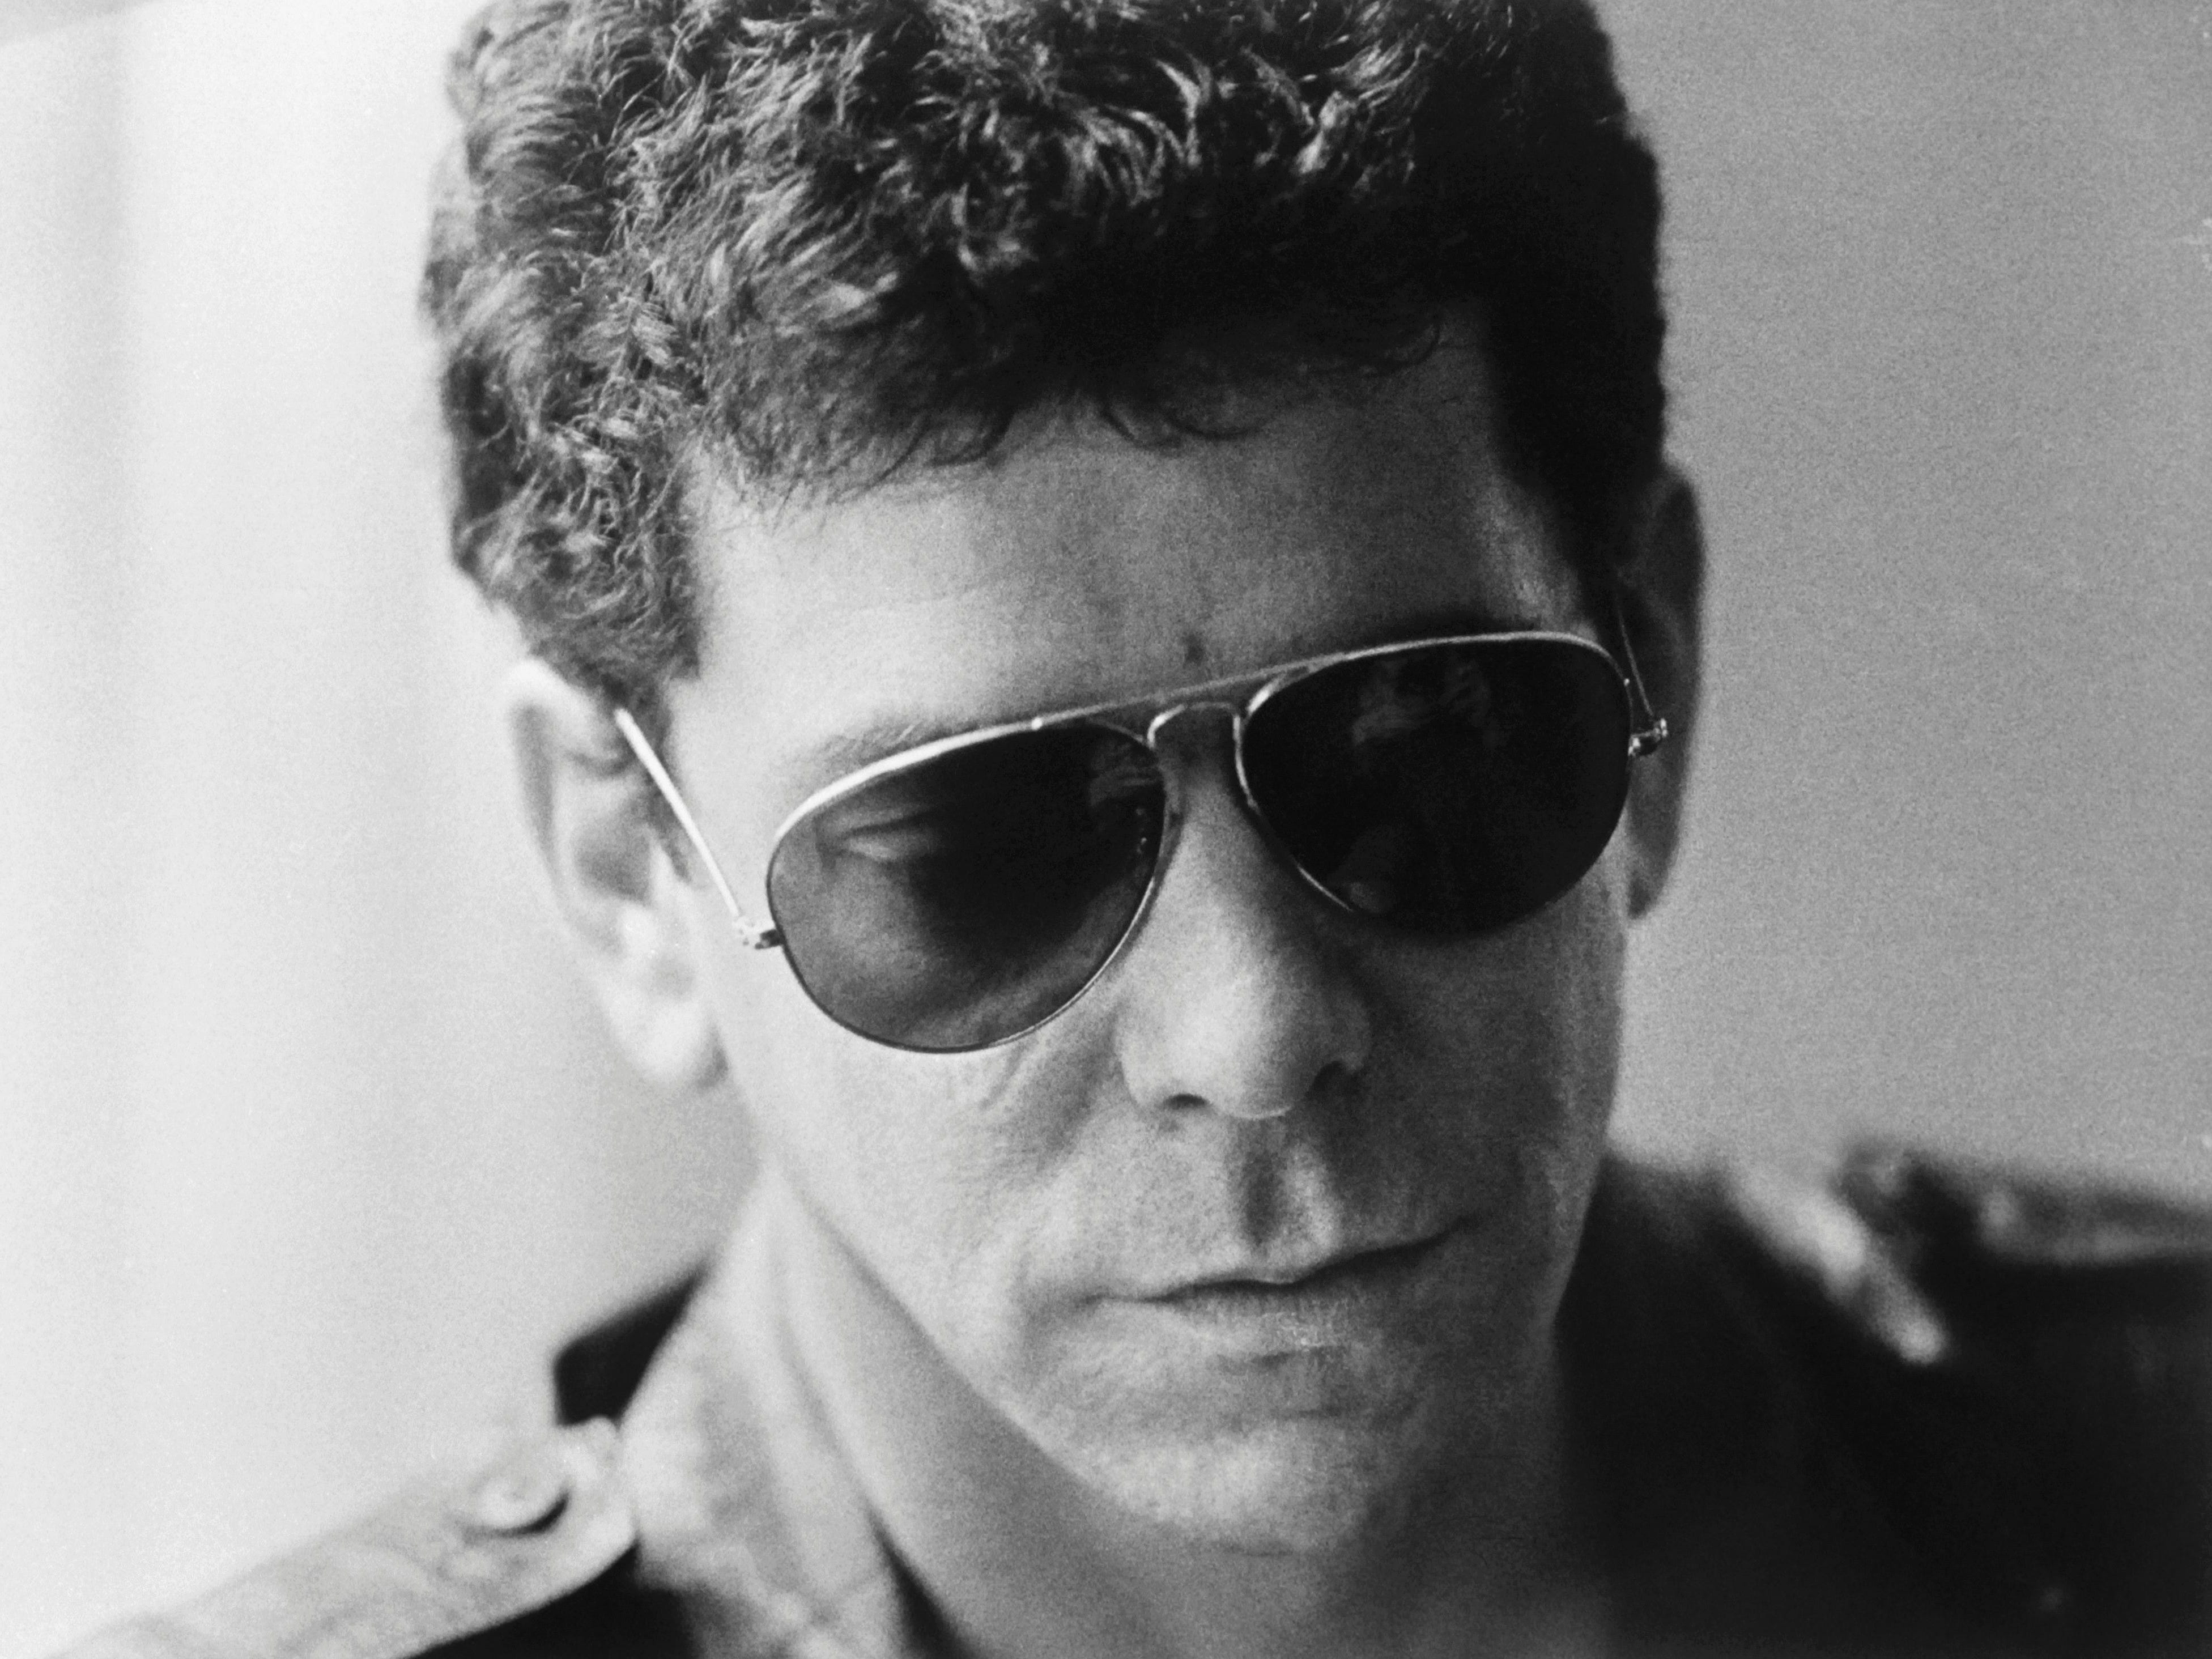 Picture released on April 4, 1983 of Lou Reed, in Stockholm.